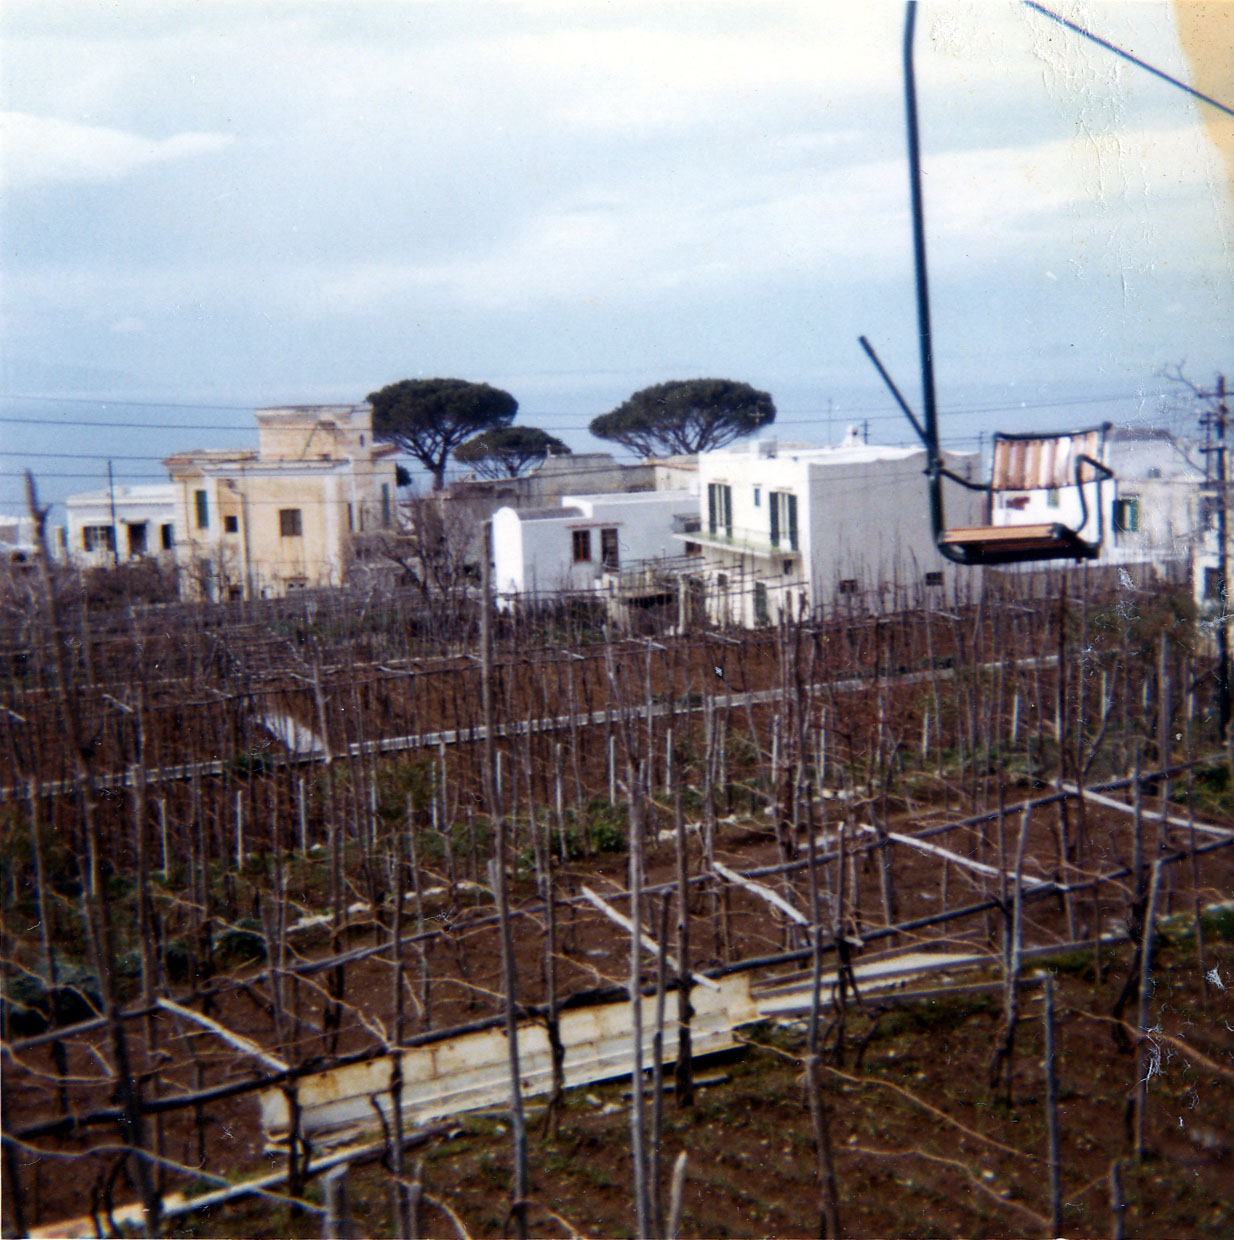 04-capri-new-construction-from-chair-lift02-w